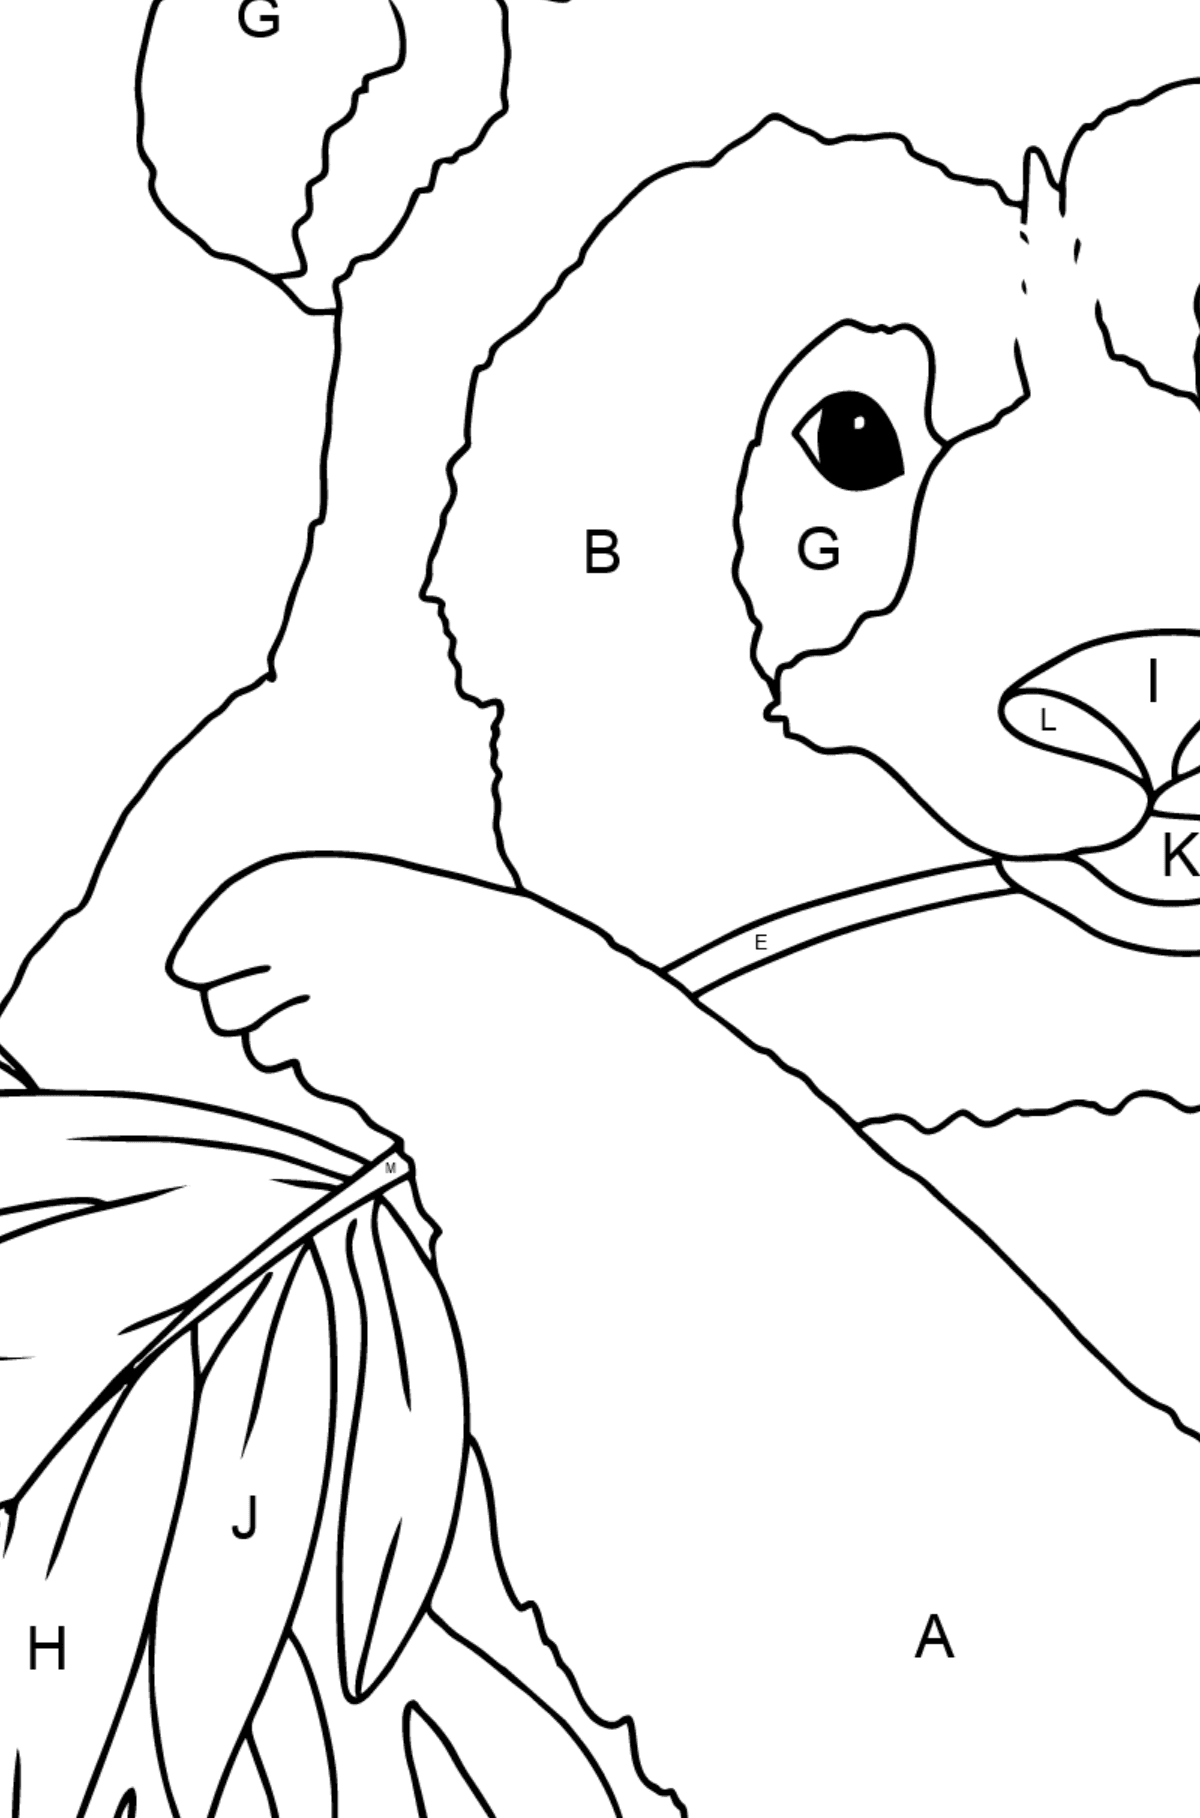 Coloring Page - A Panda is Eating Bamboo Leaves - Coloring by Letters for Children